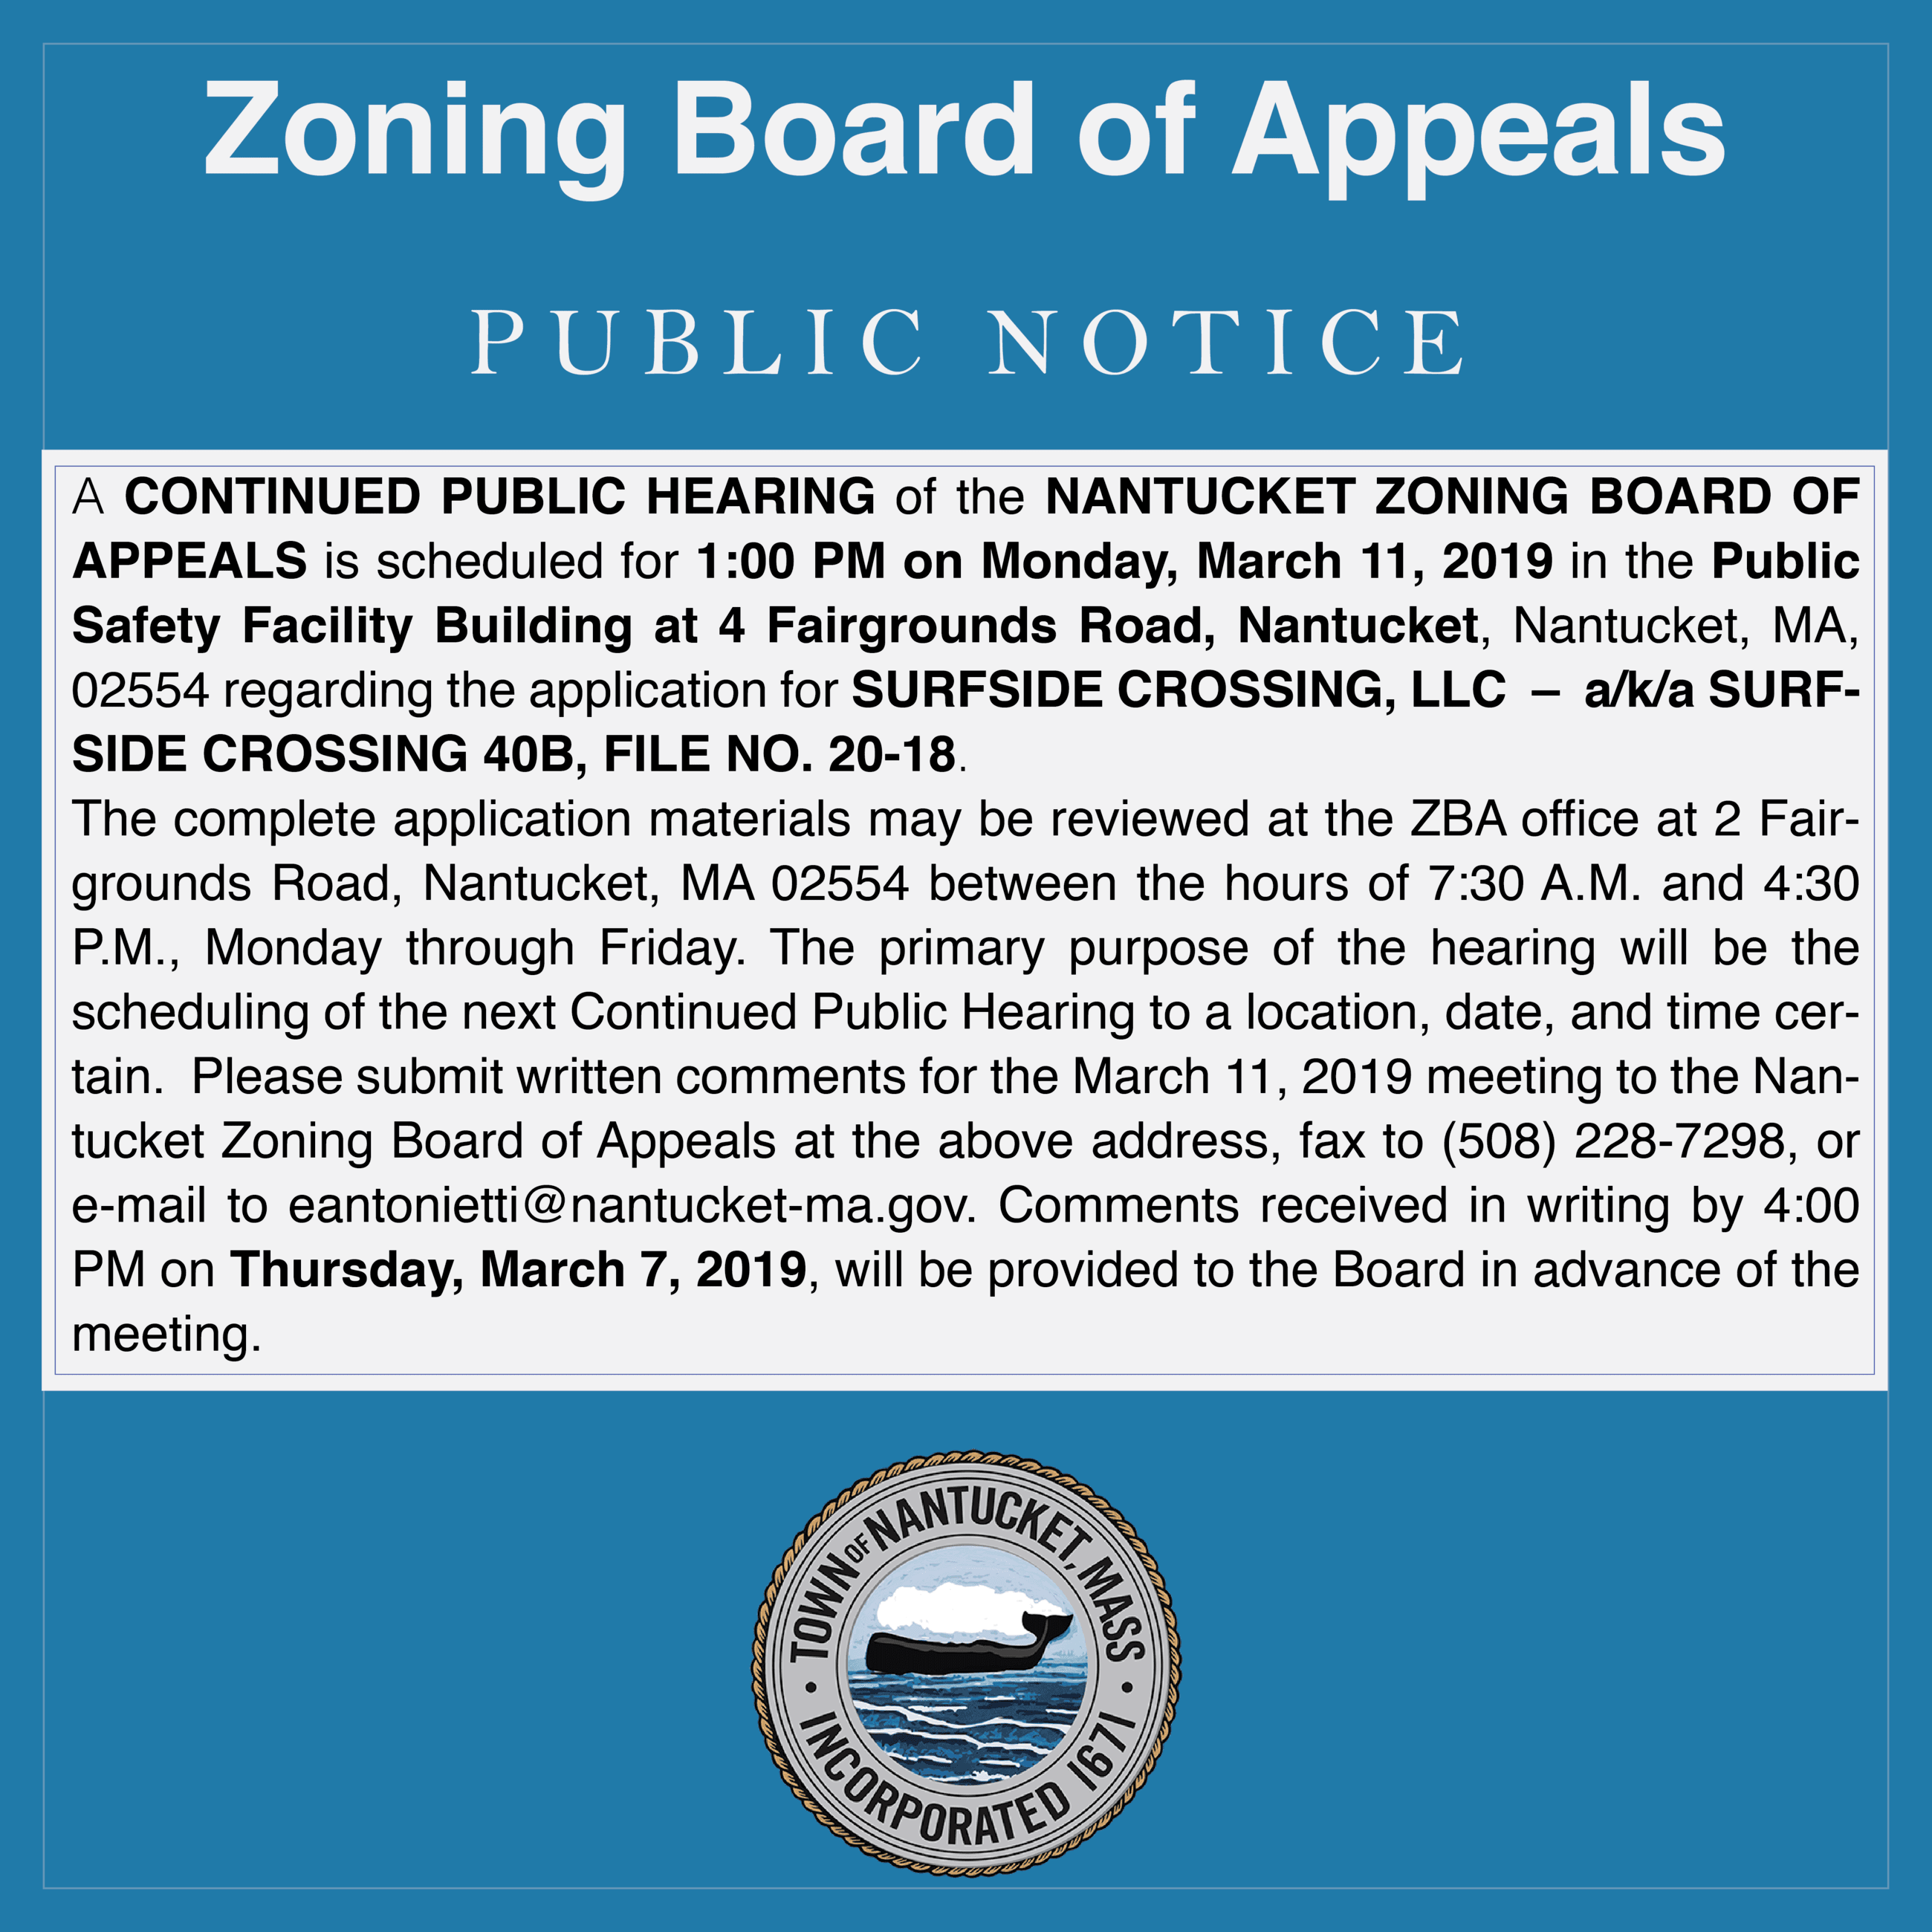 zba public hearing notice MAR